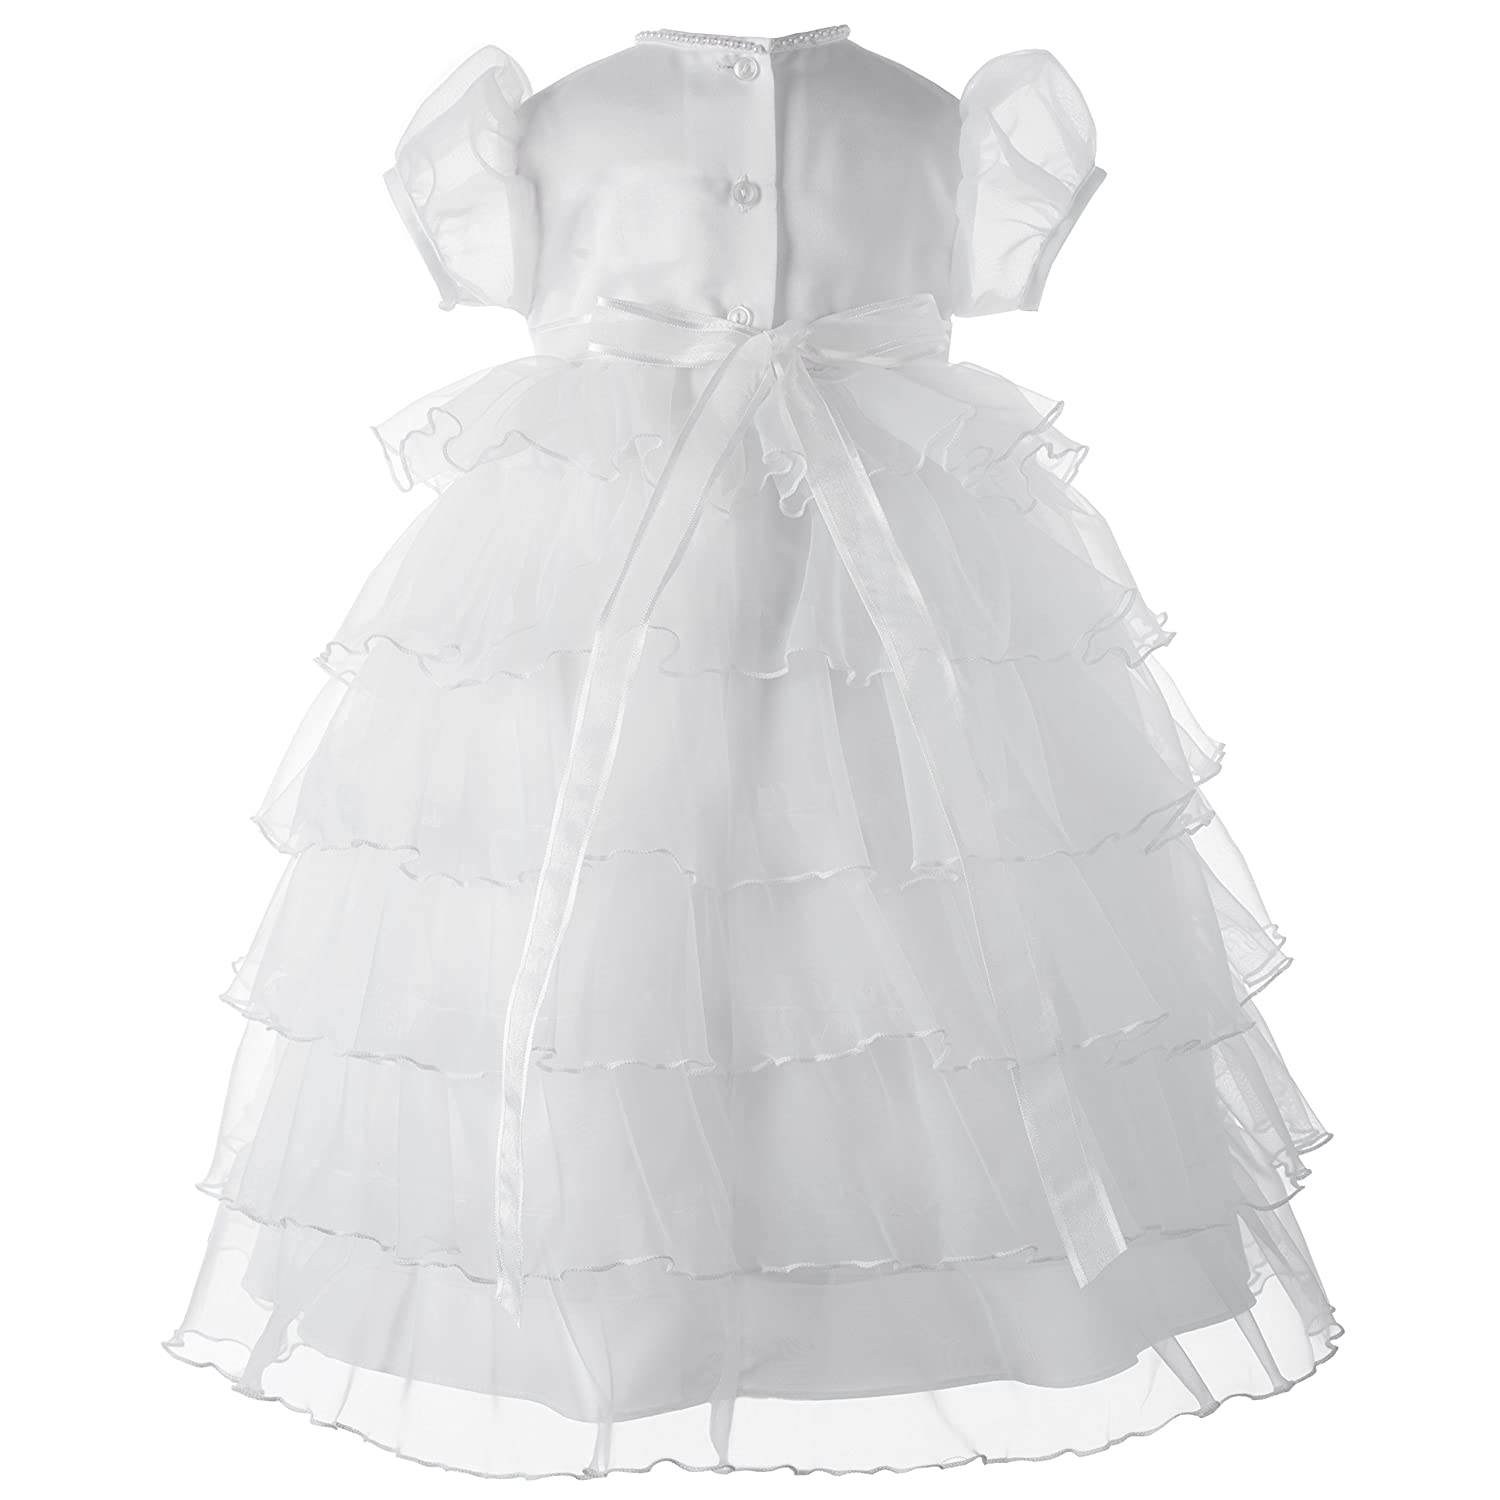 Lauren Madison baby girl Christening Baptism Multi Tiered Gown With Satin Bodice White 6-9 Months Haddad Brothers Clothing 1340